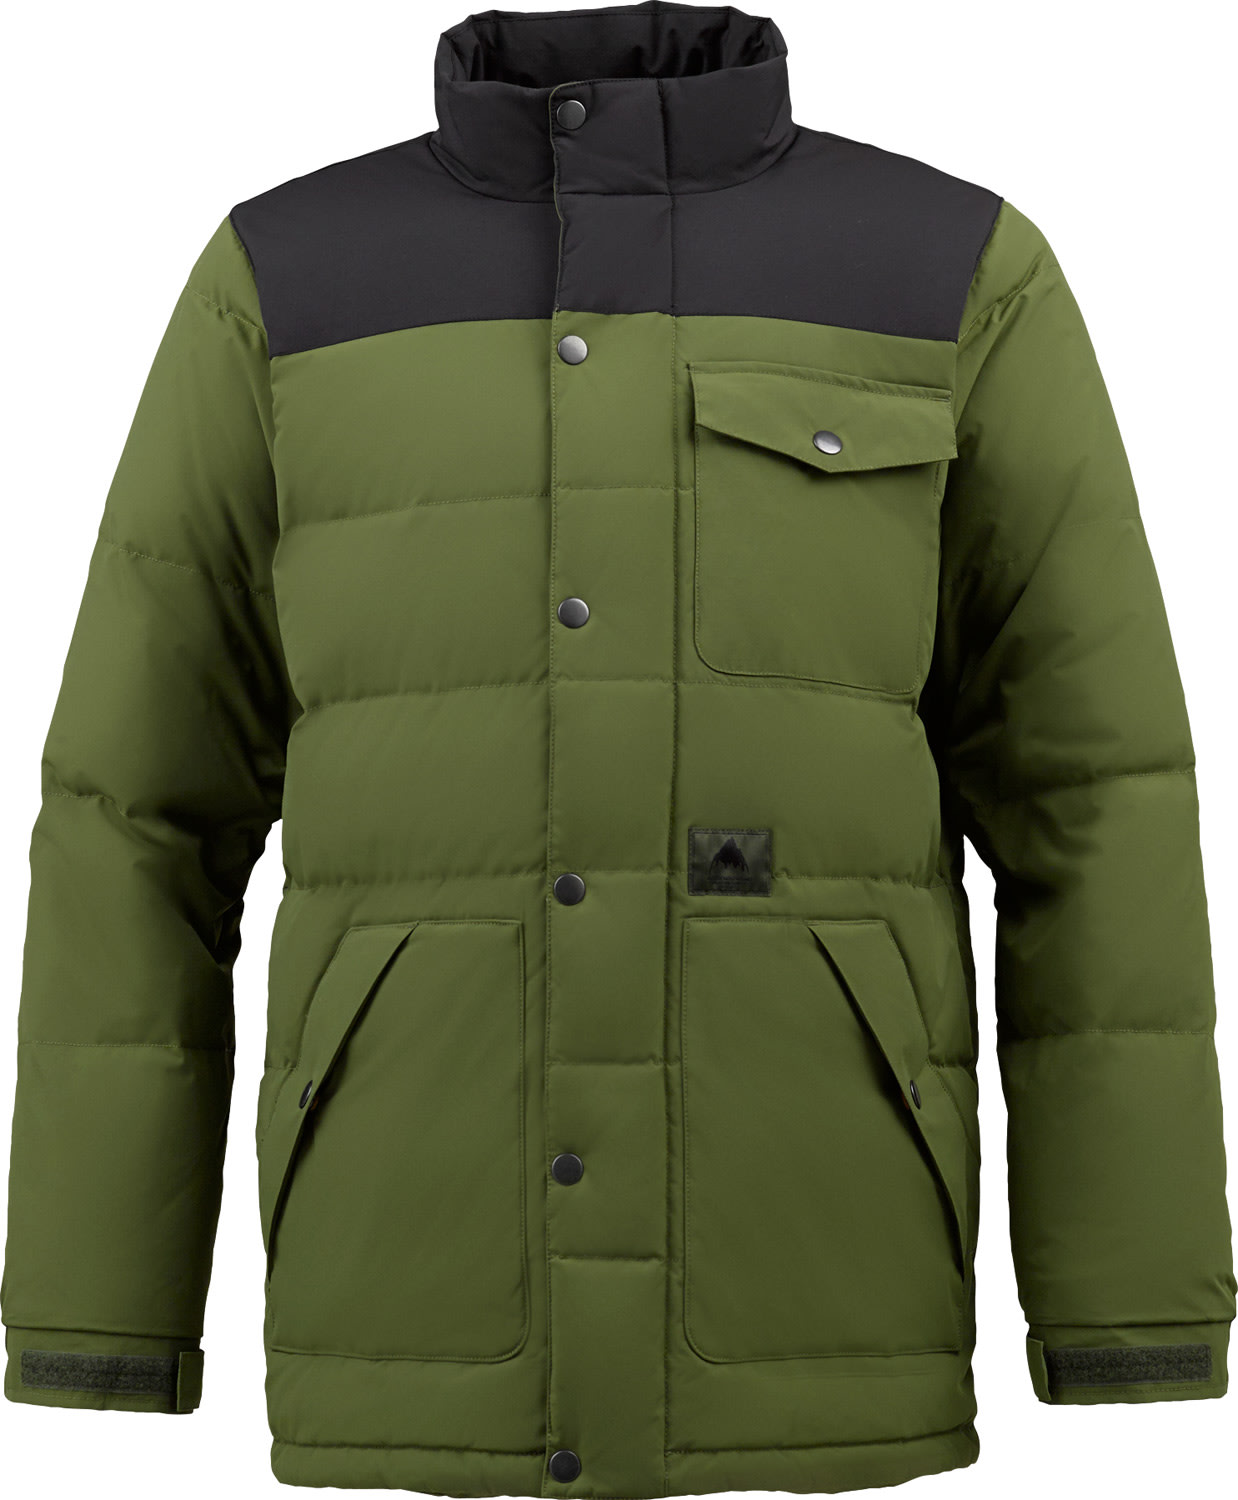 Discount Cheap Down Jackets | Save up to 80%